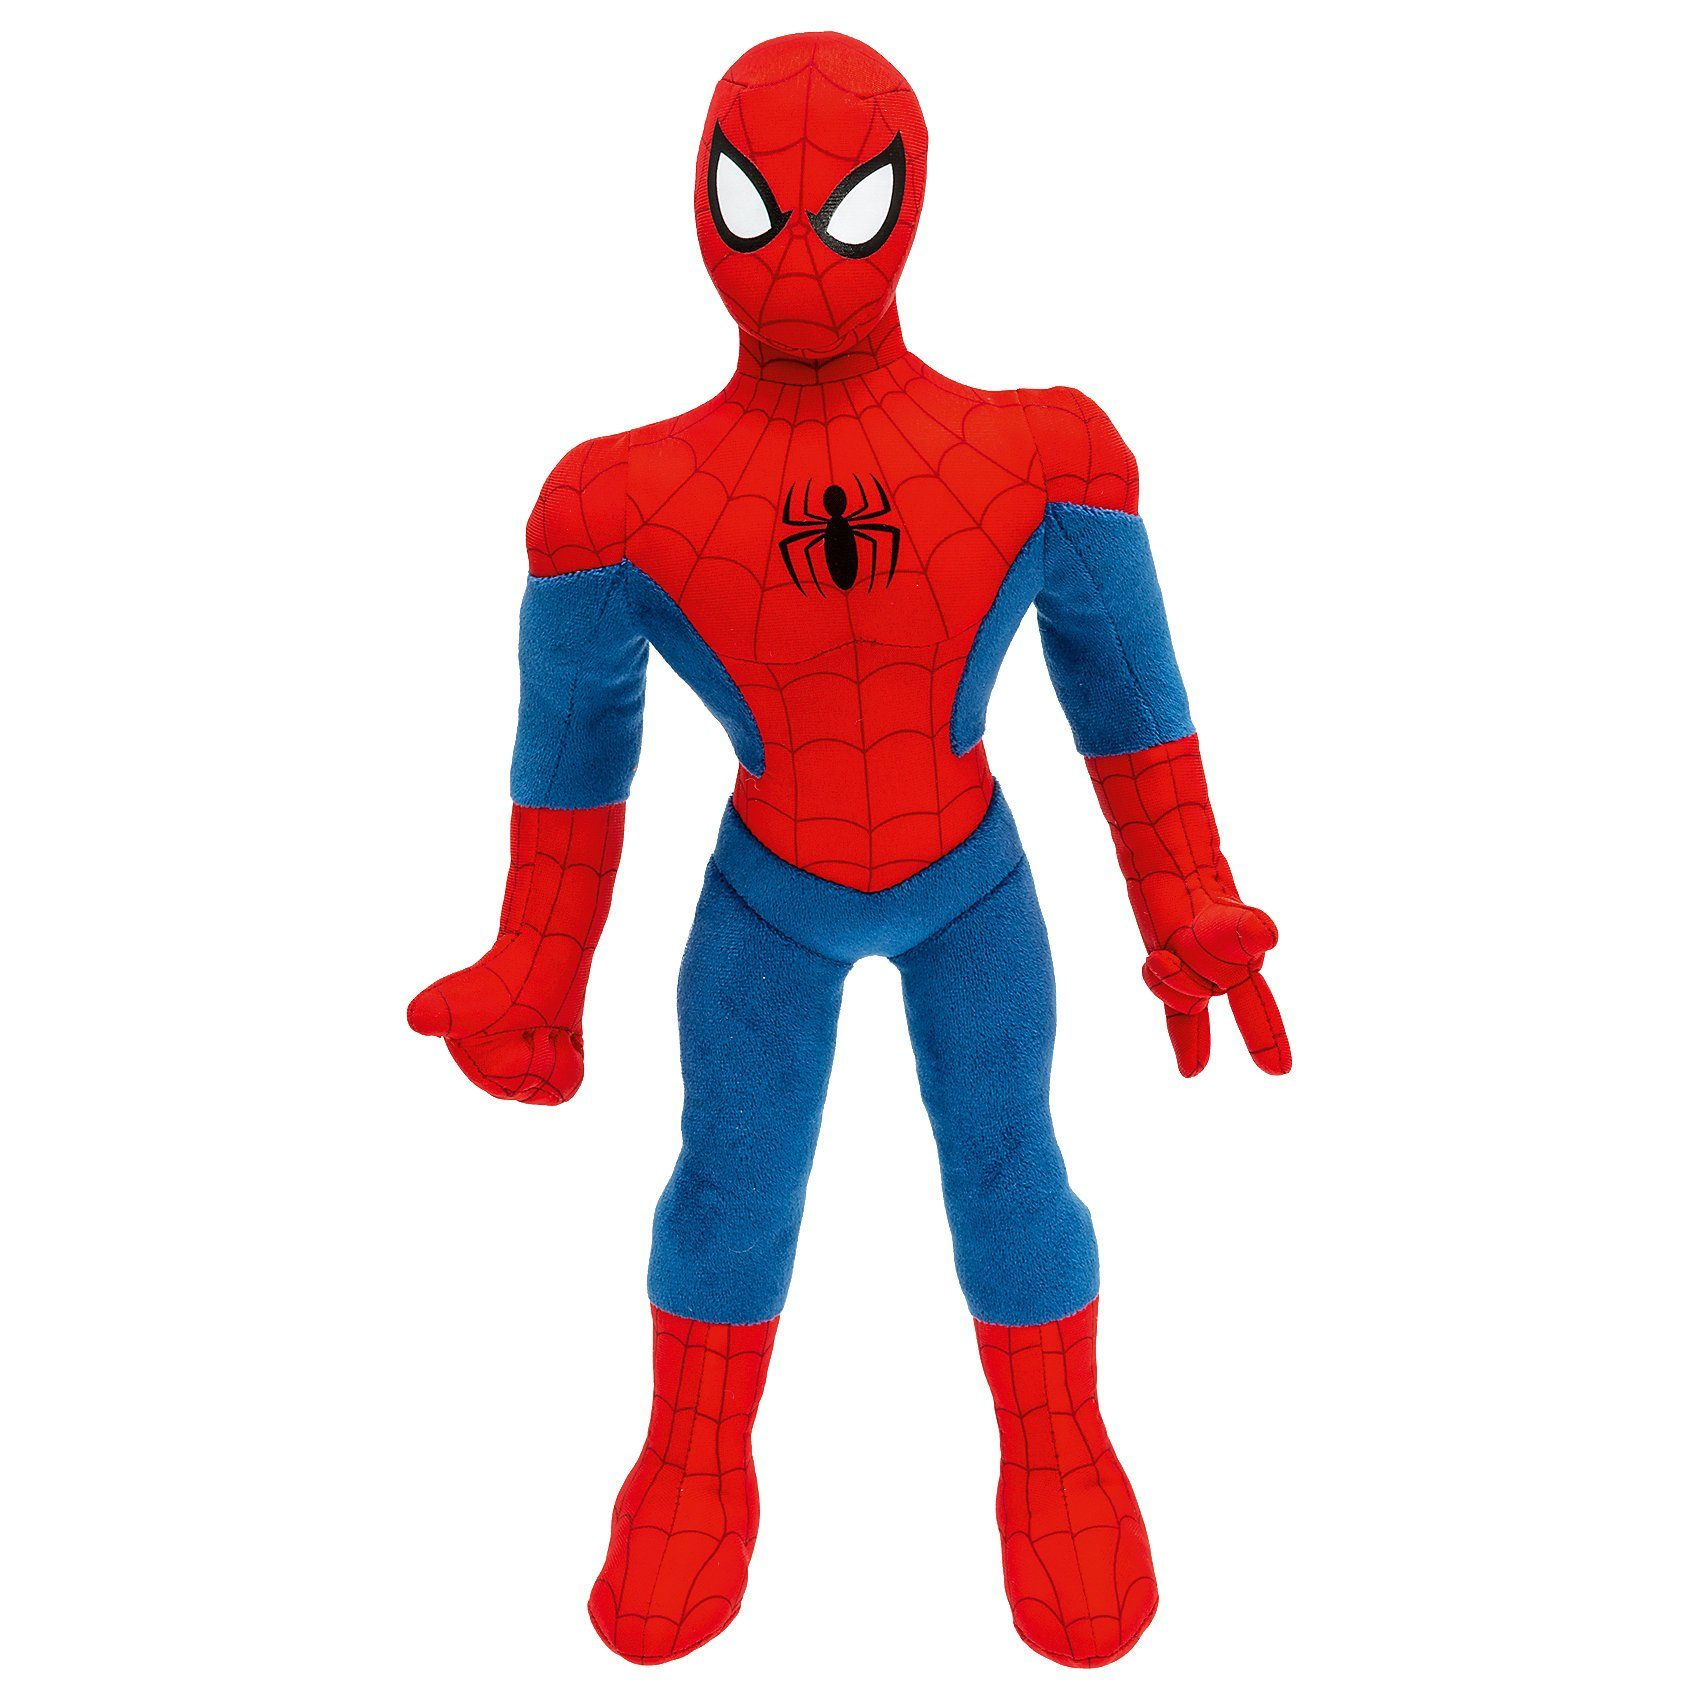 JOY TOY Plüsch Spiderman